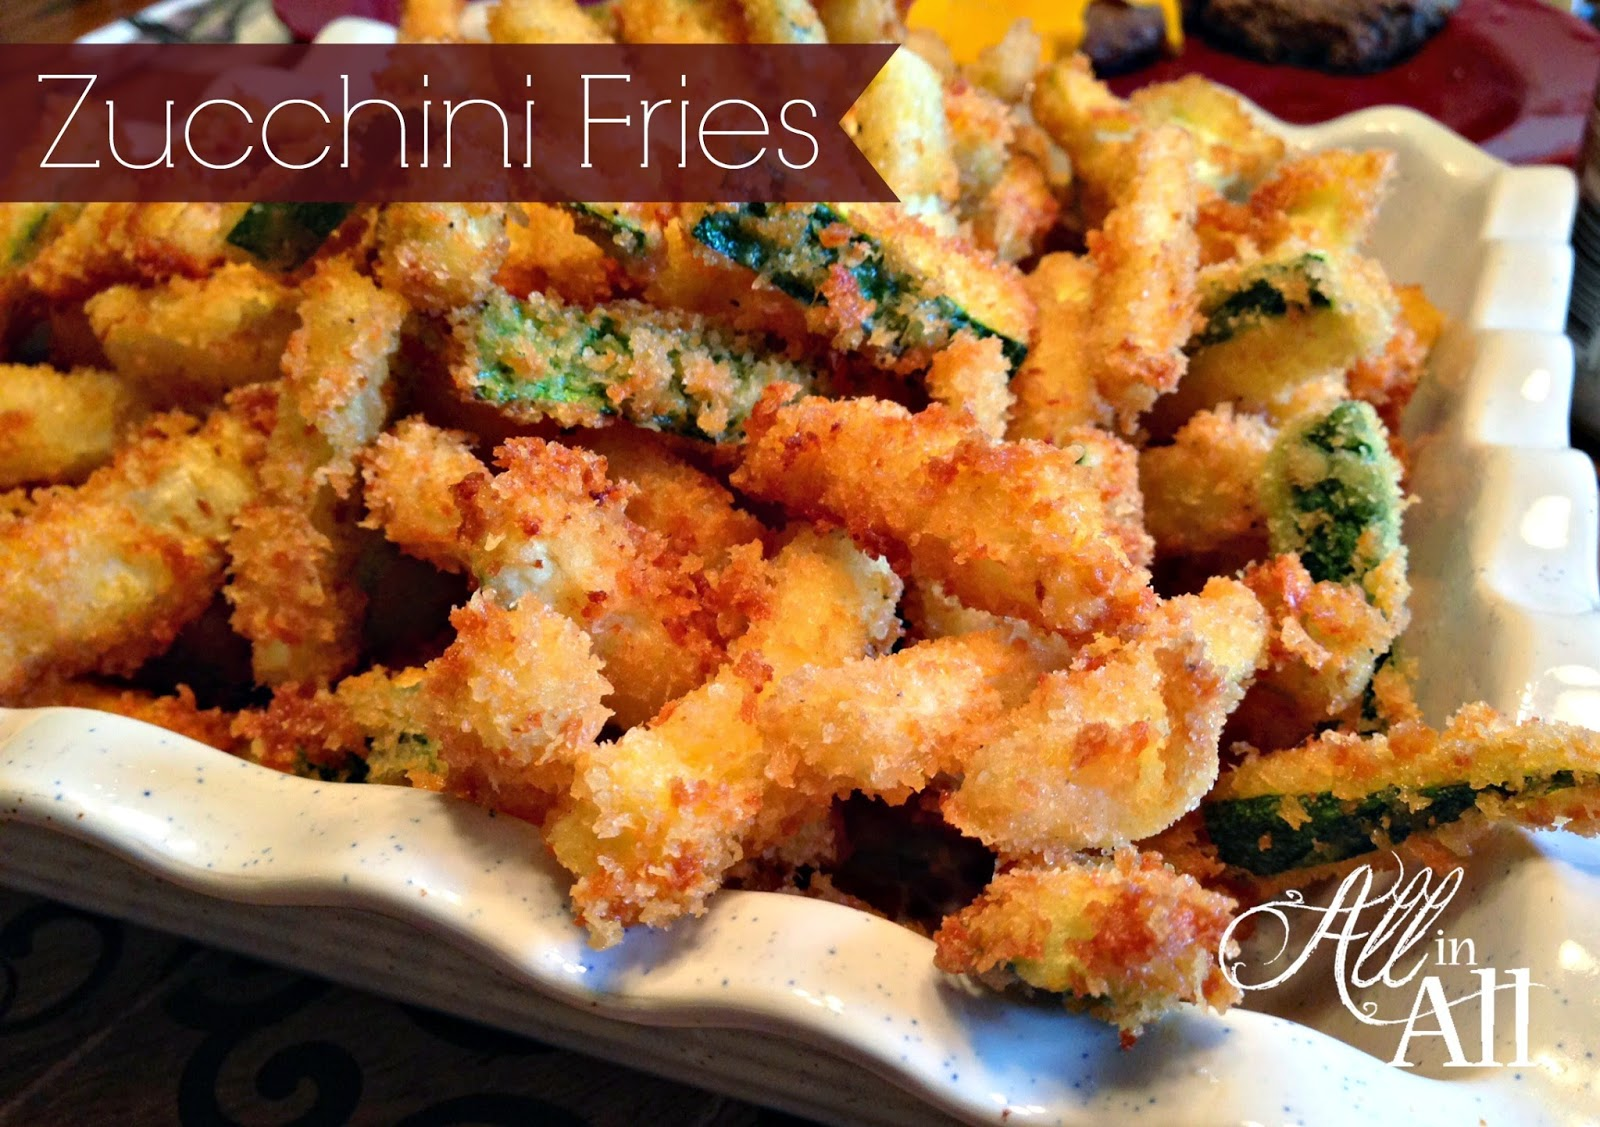 fries home fries les halles fries oven fries baked zucchini fries ...